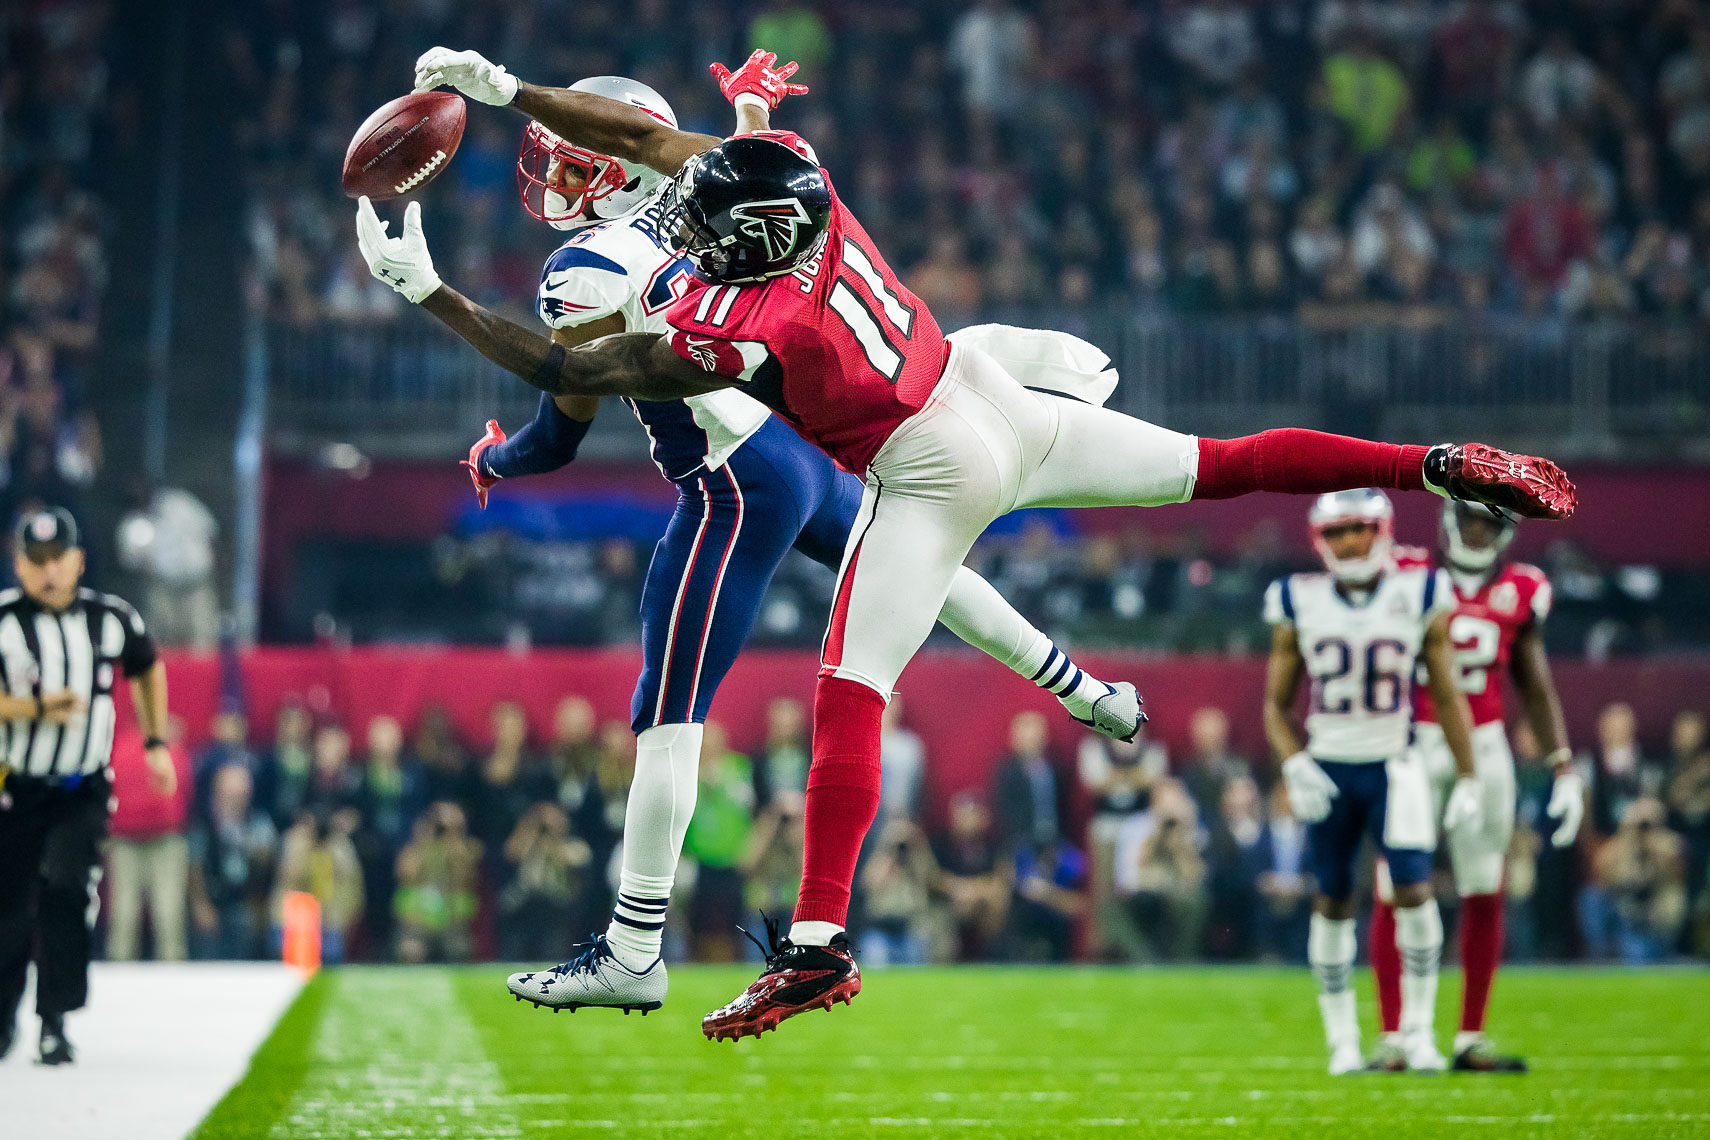 superbowl06  Best Super Bowl LI 51 photos between Atlanta Falcons and New England Patriots Julio Jones greatest Super Bowl catch